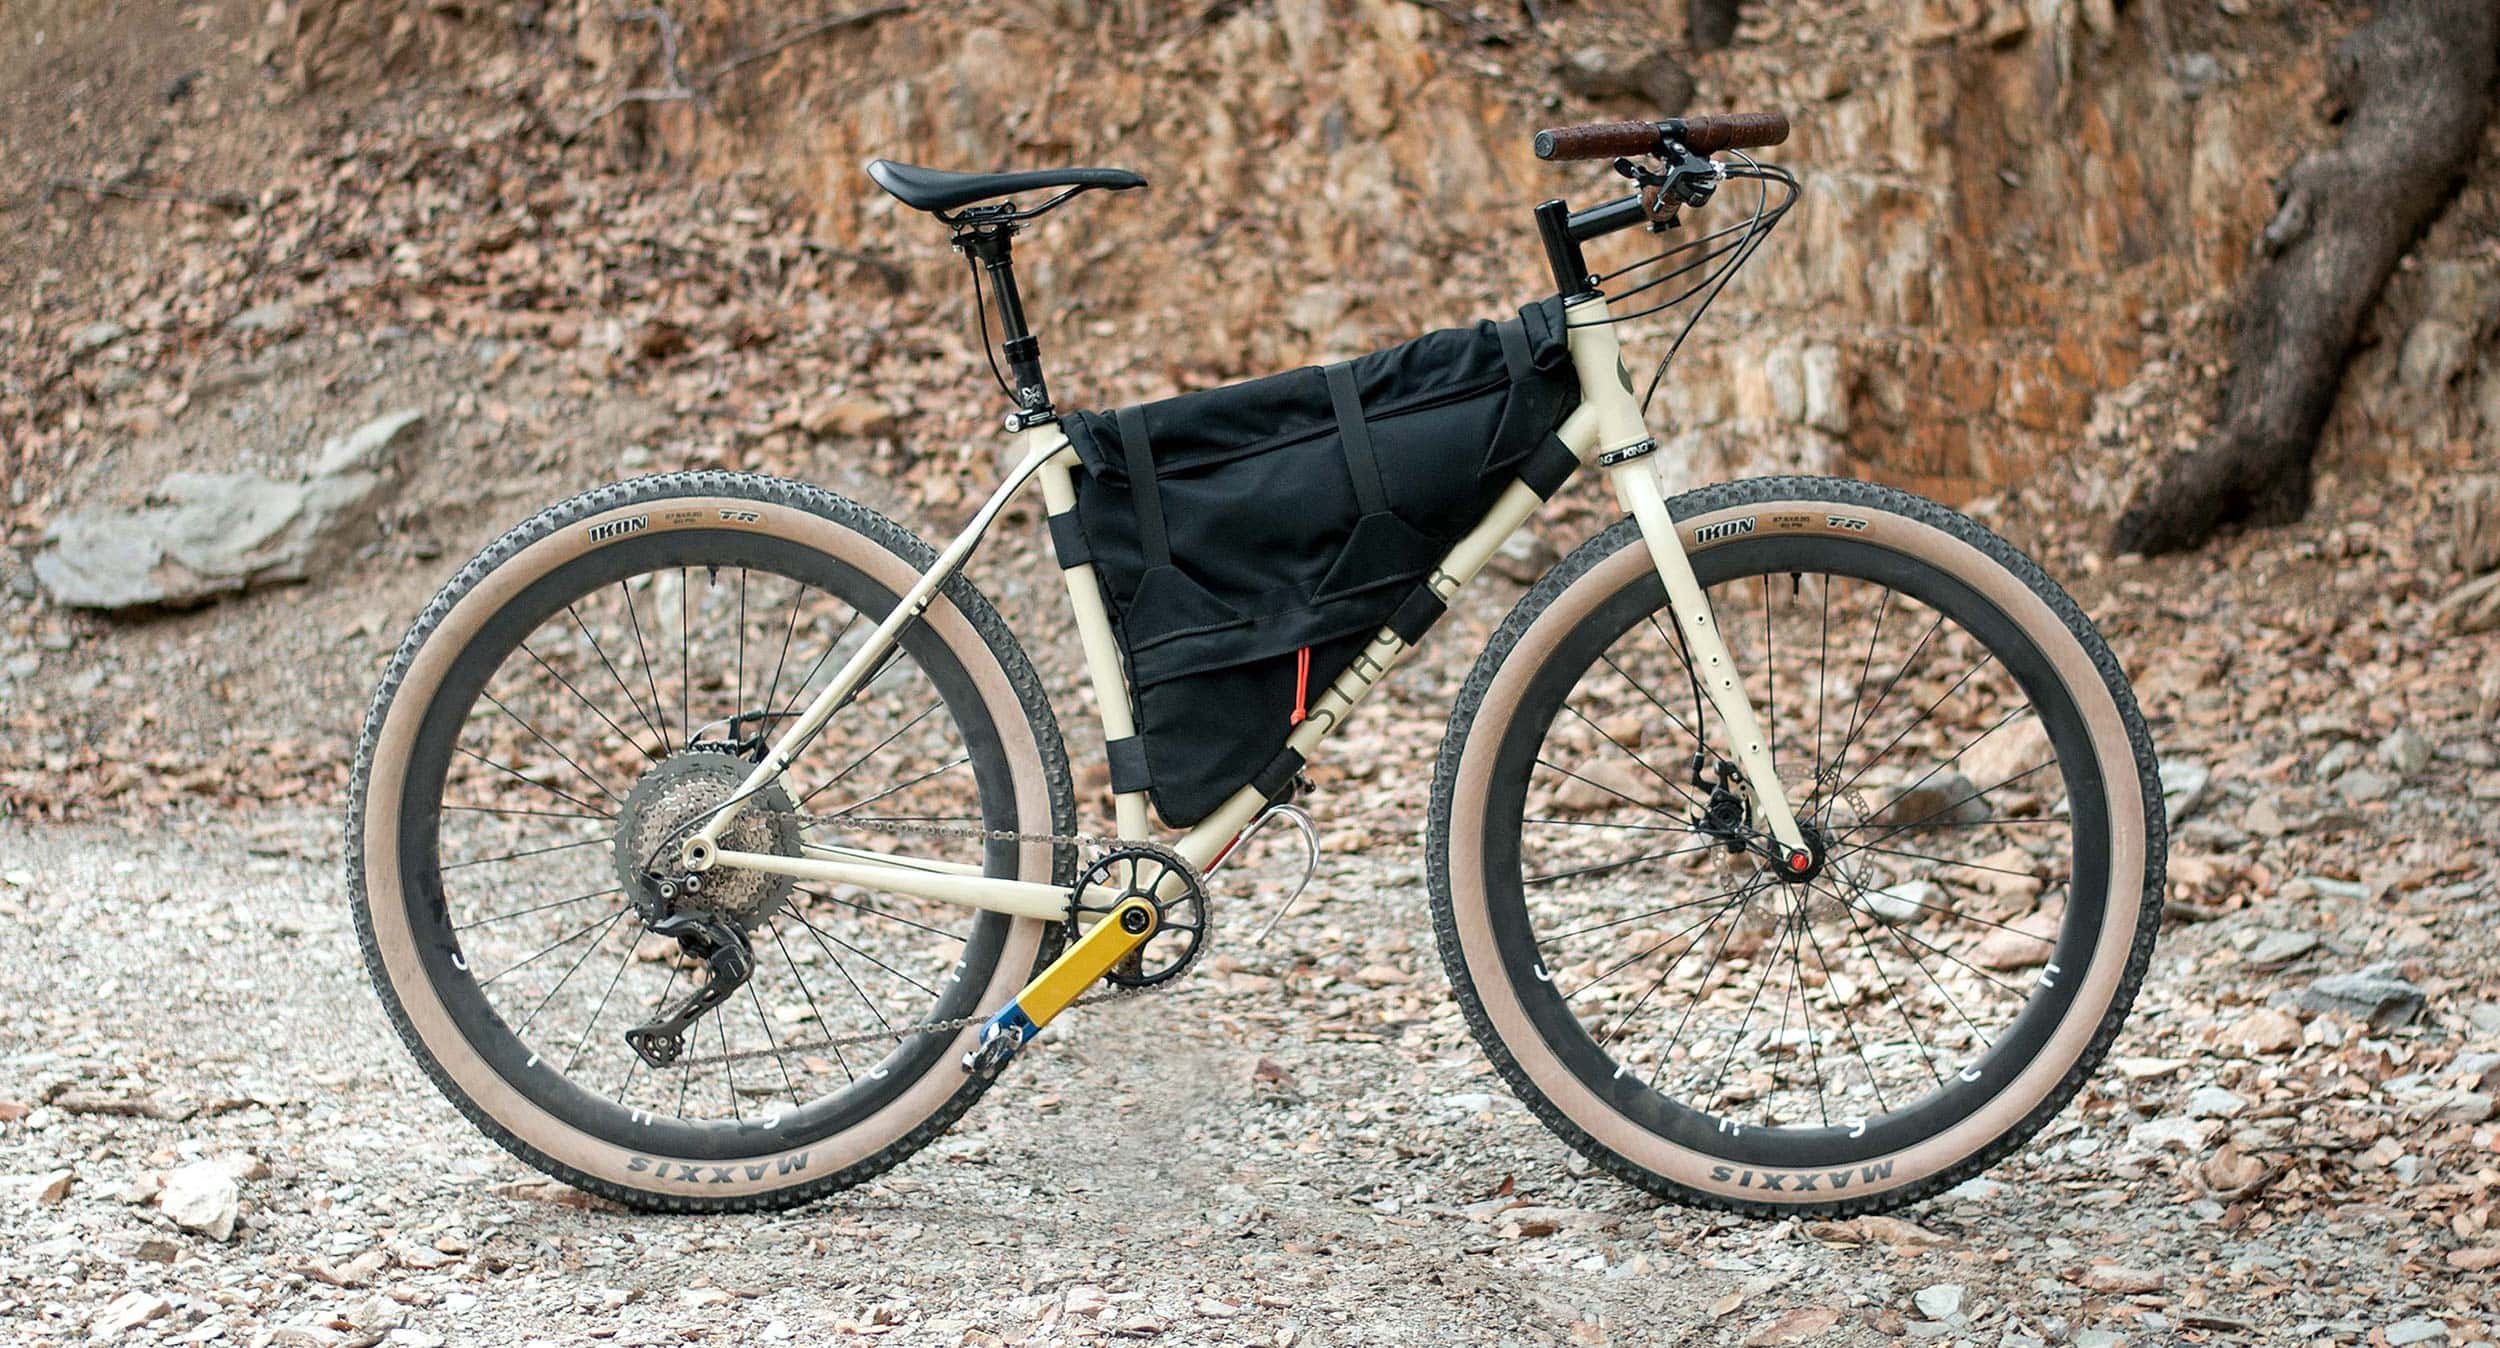 Stayer cycles Judith's adventure bike prototype